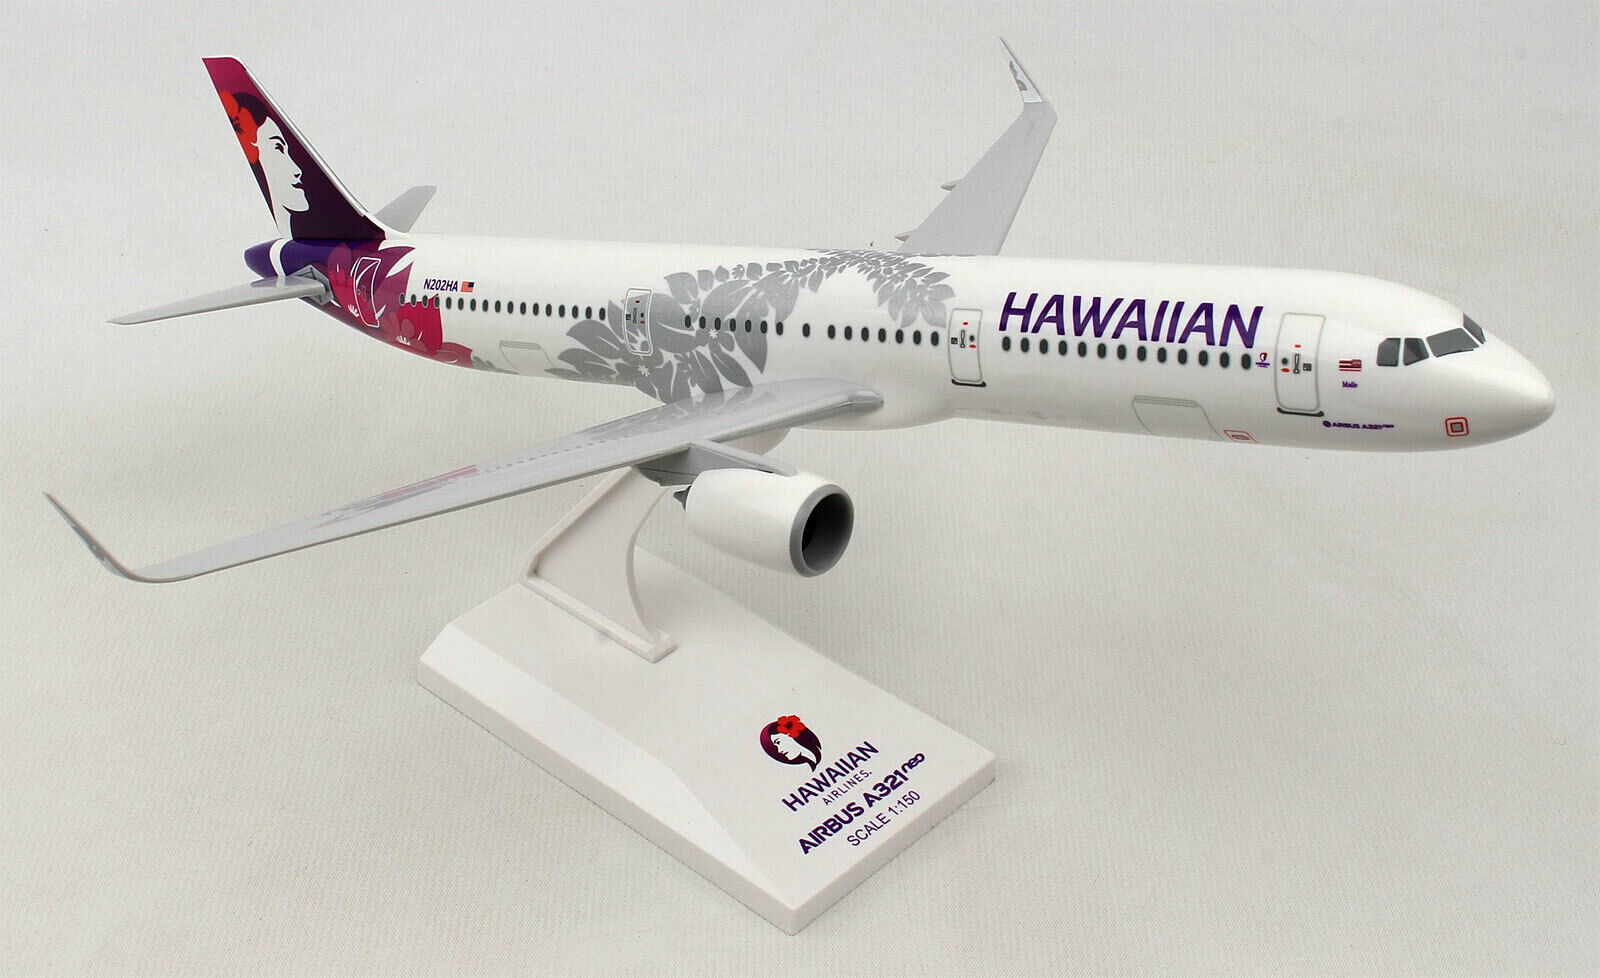 Hawaiian Airlines-Airbus a321neo - 1 150 - Skymarks skr990-a321 Neo Hawaii